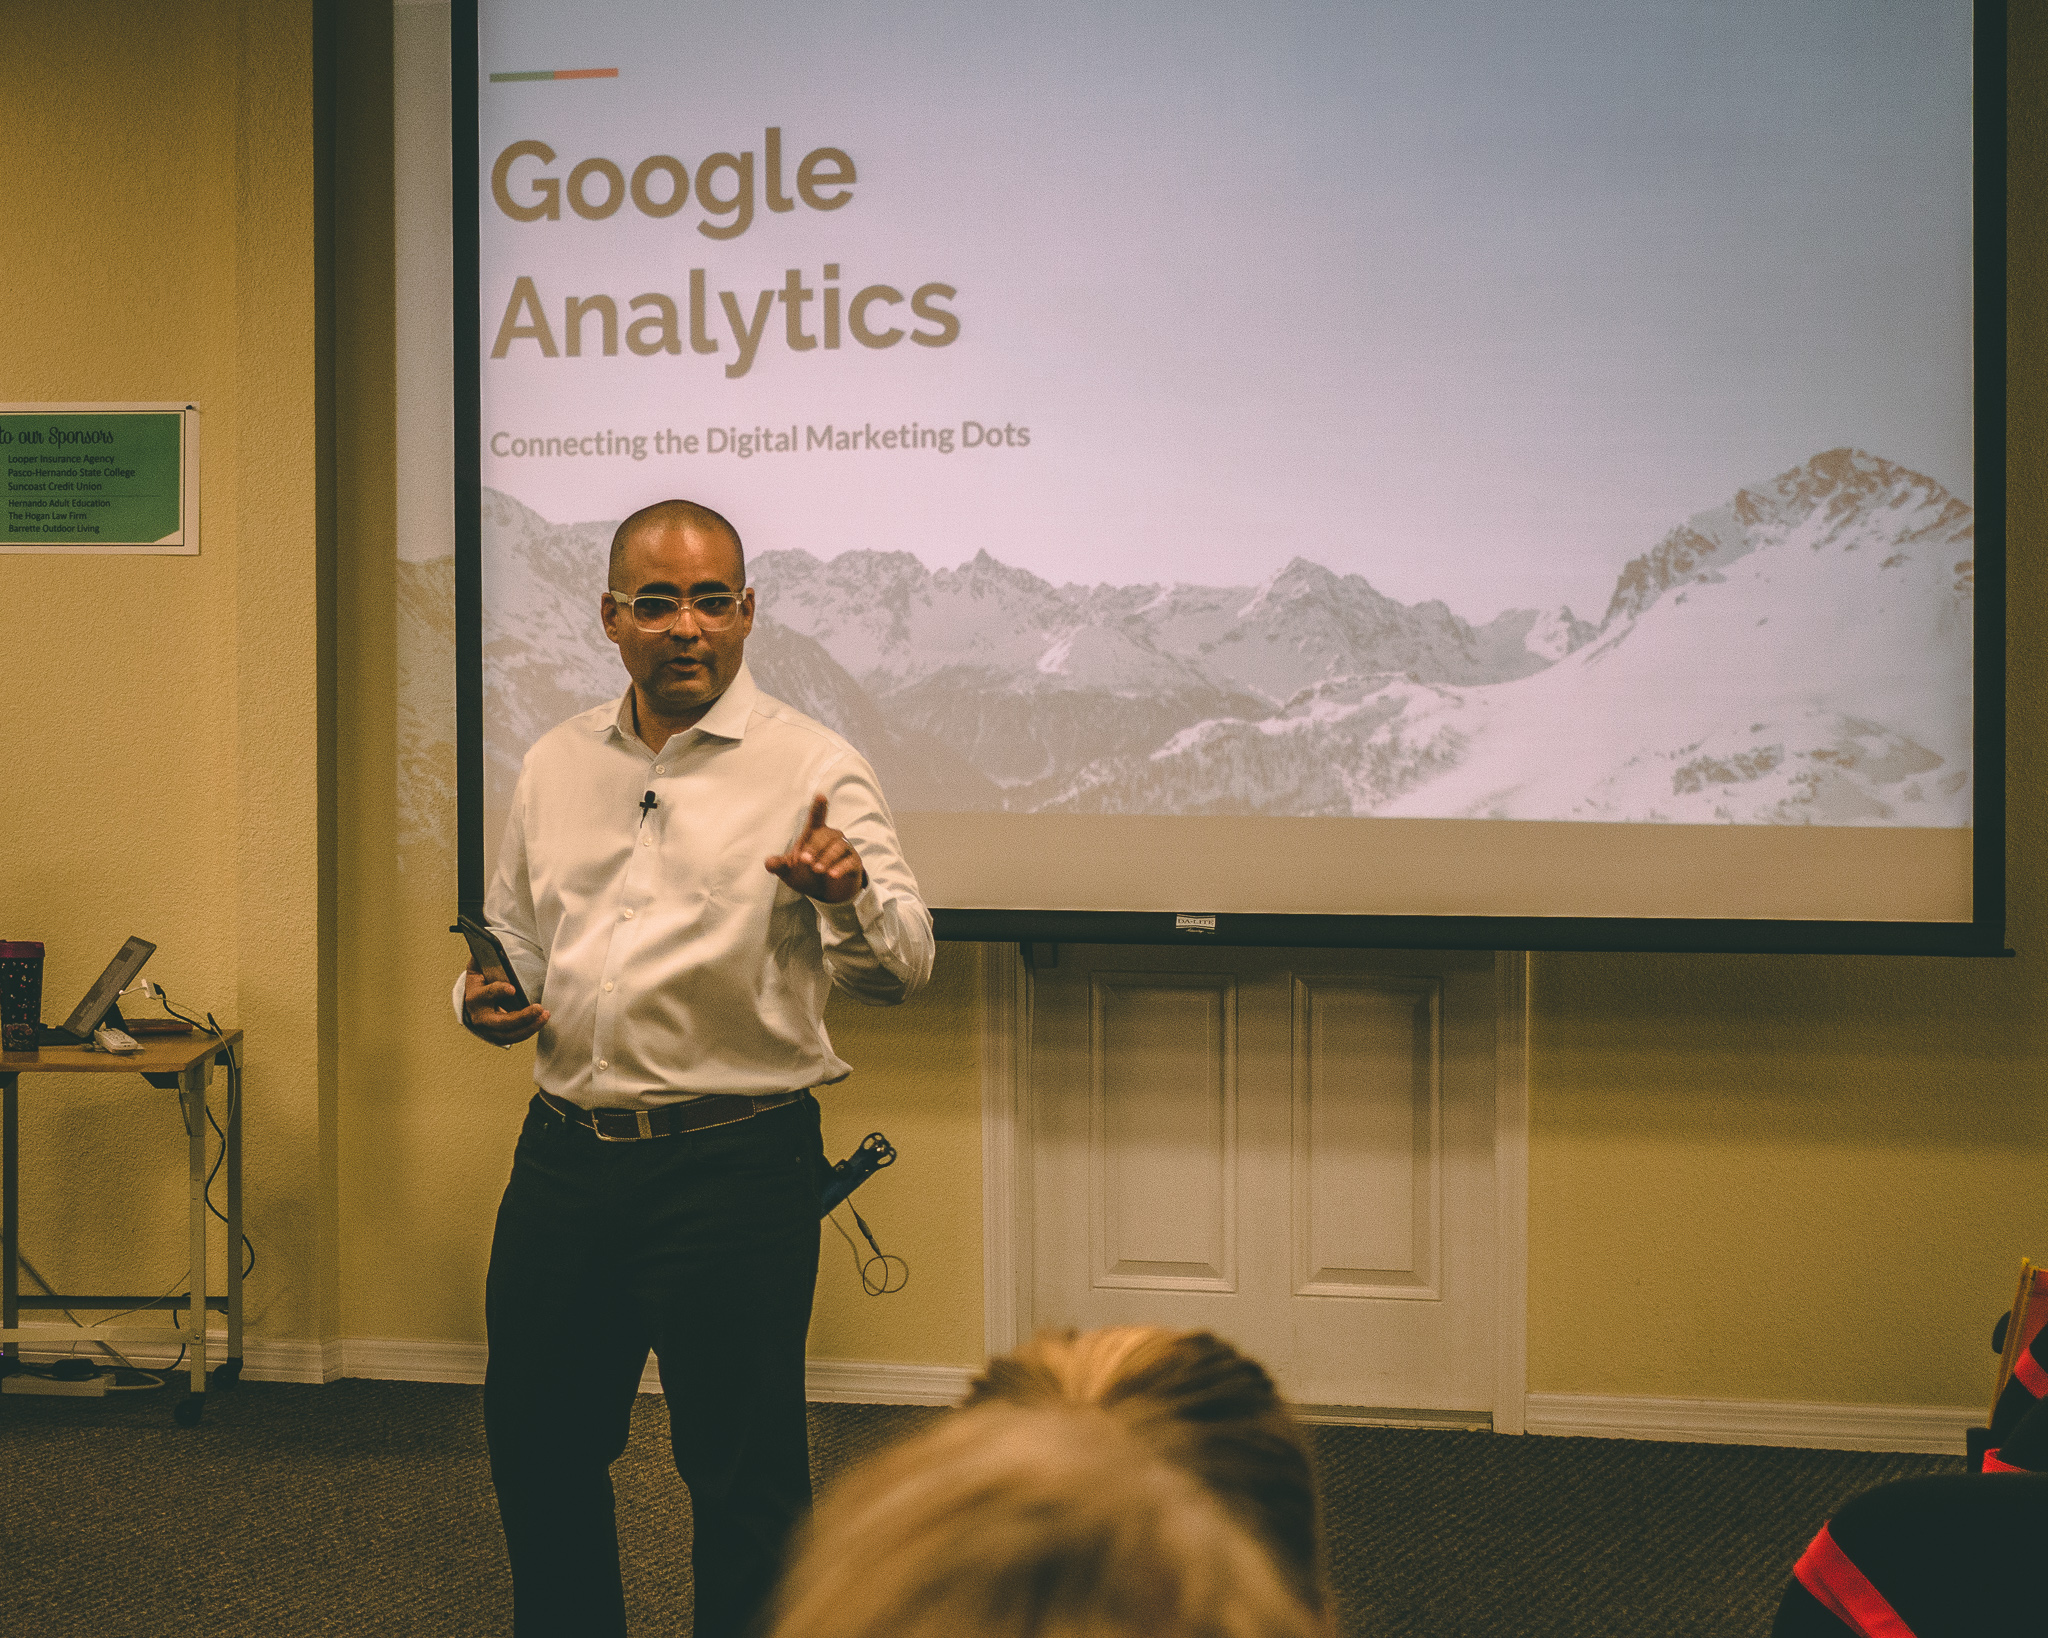 Angel Anderson Google Analytics presentation at the Greater Hernando Chamber of Commerce